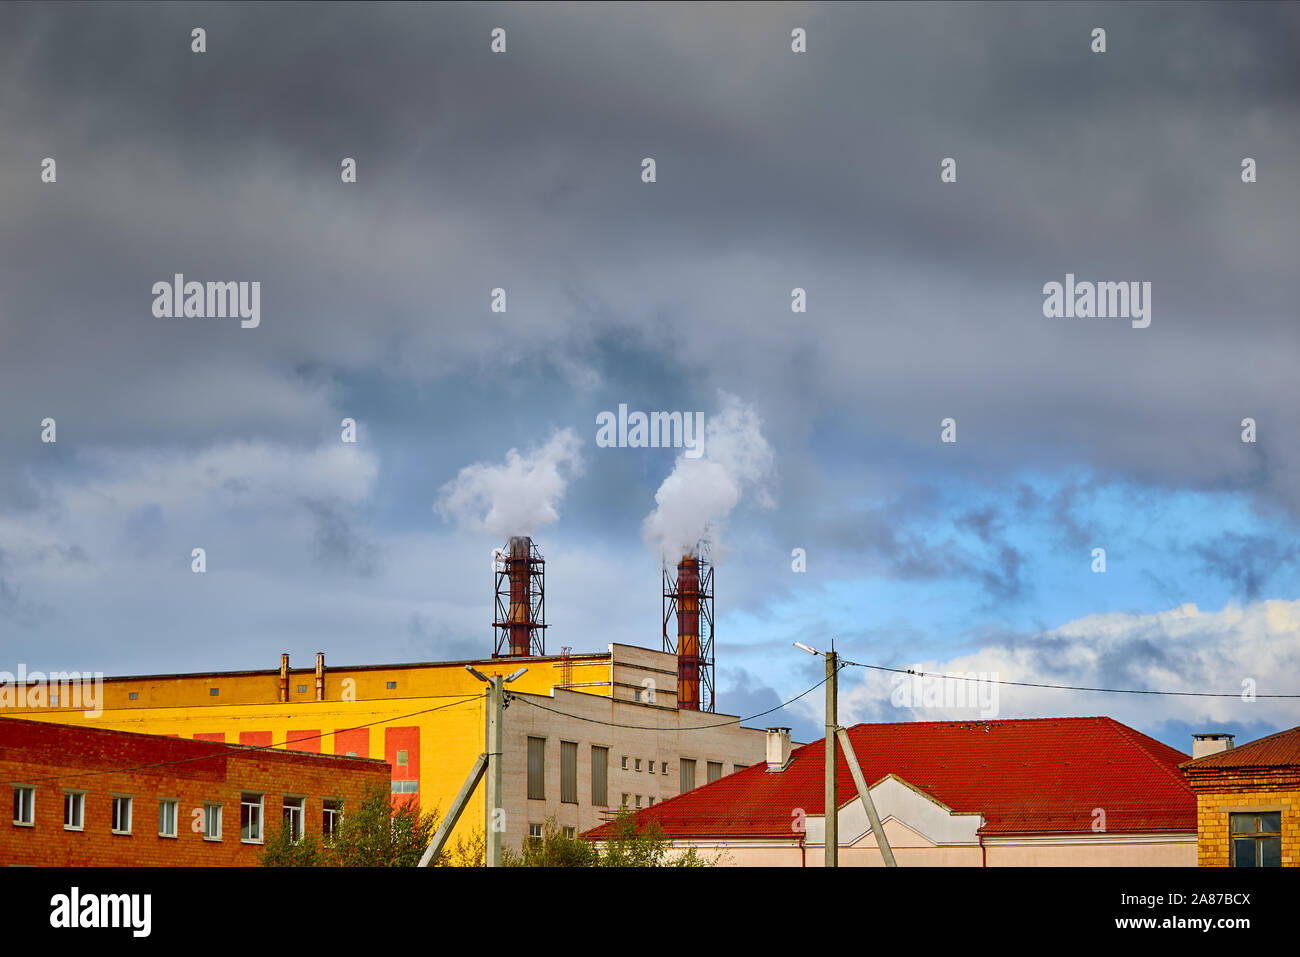 Air pollution and climate change theme. Poor environment in the city. Stock Photo